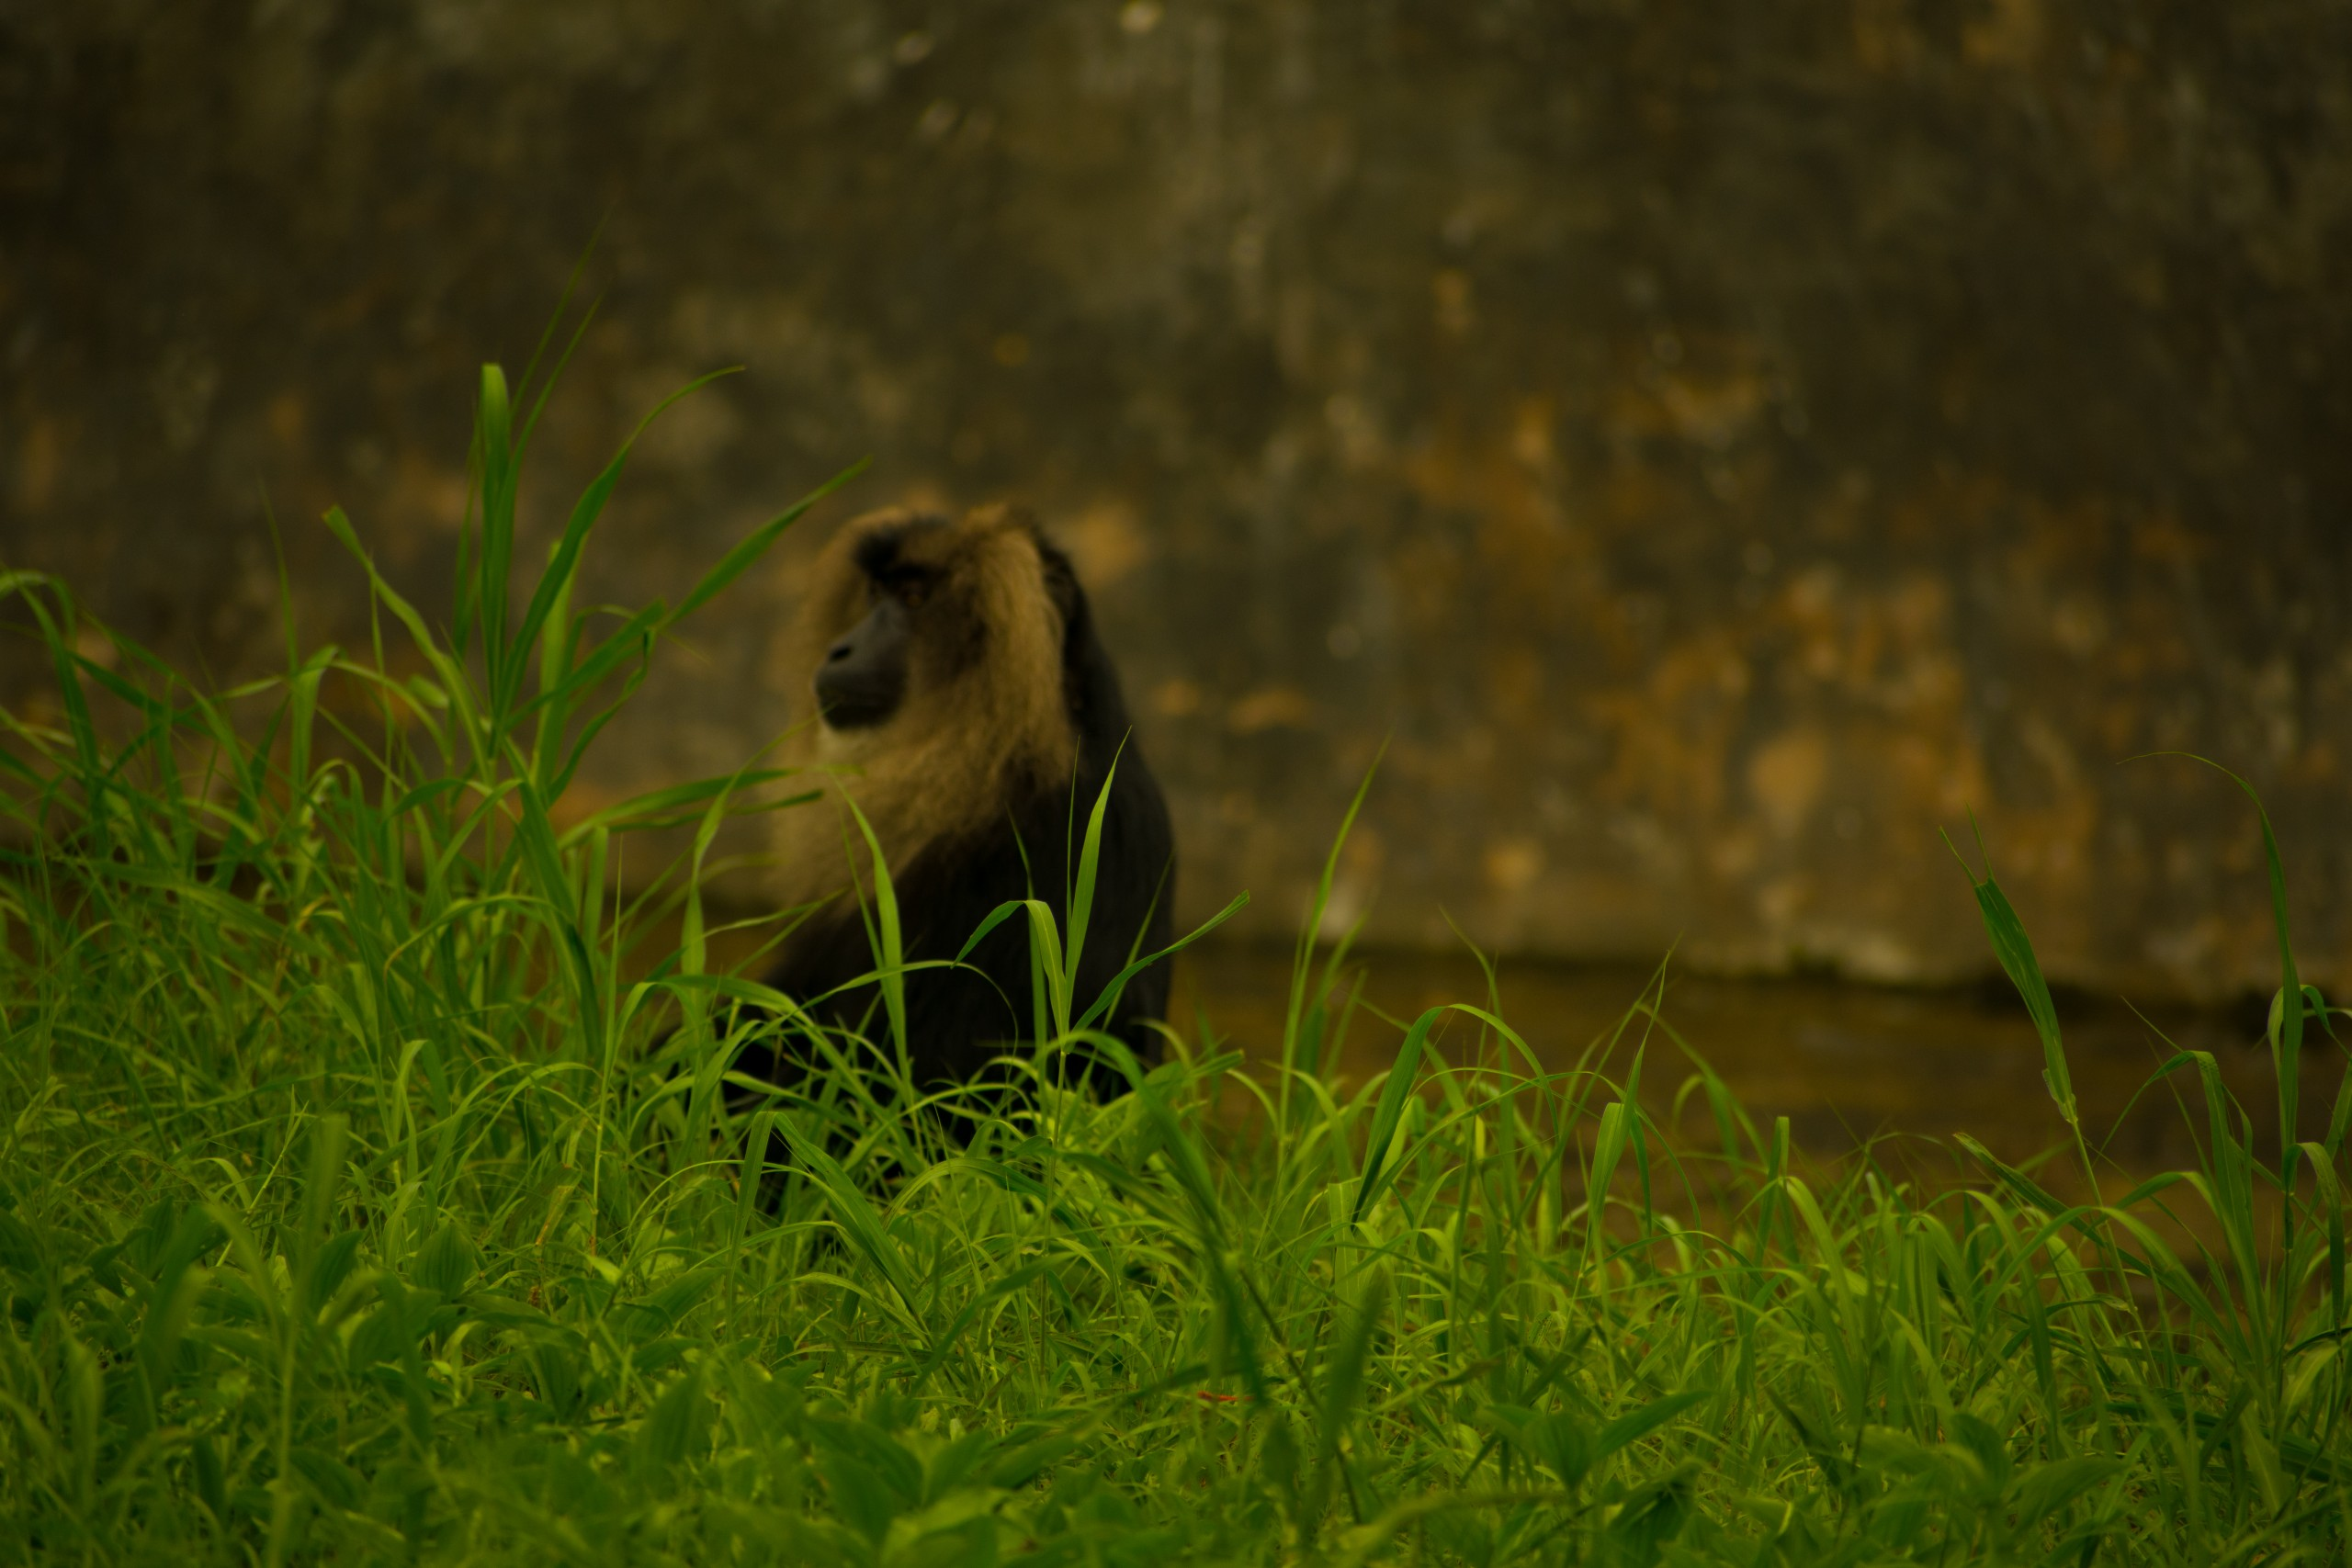 Lion-tailed macaque on Grass